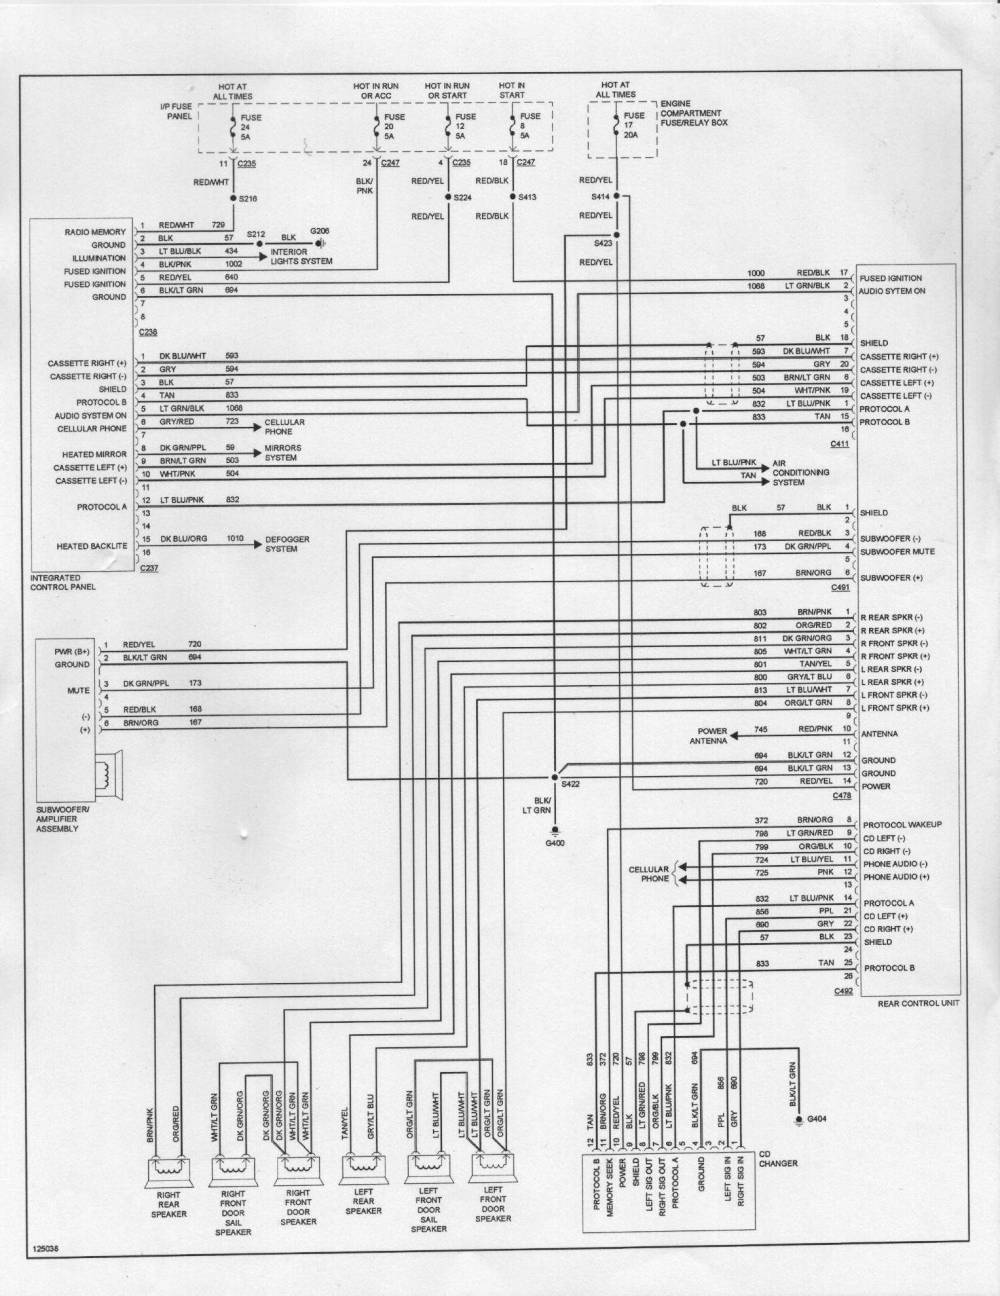 medium resolution of 2003 mercury sable wiring harness wiring diagram mercury sable radio wiring harness 2003 mercury sable wiring